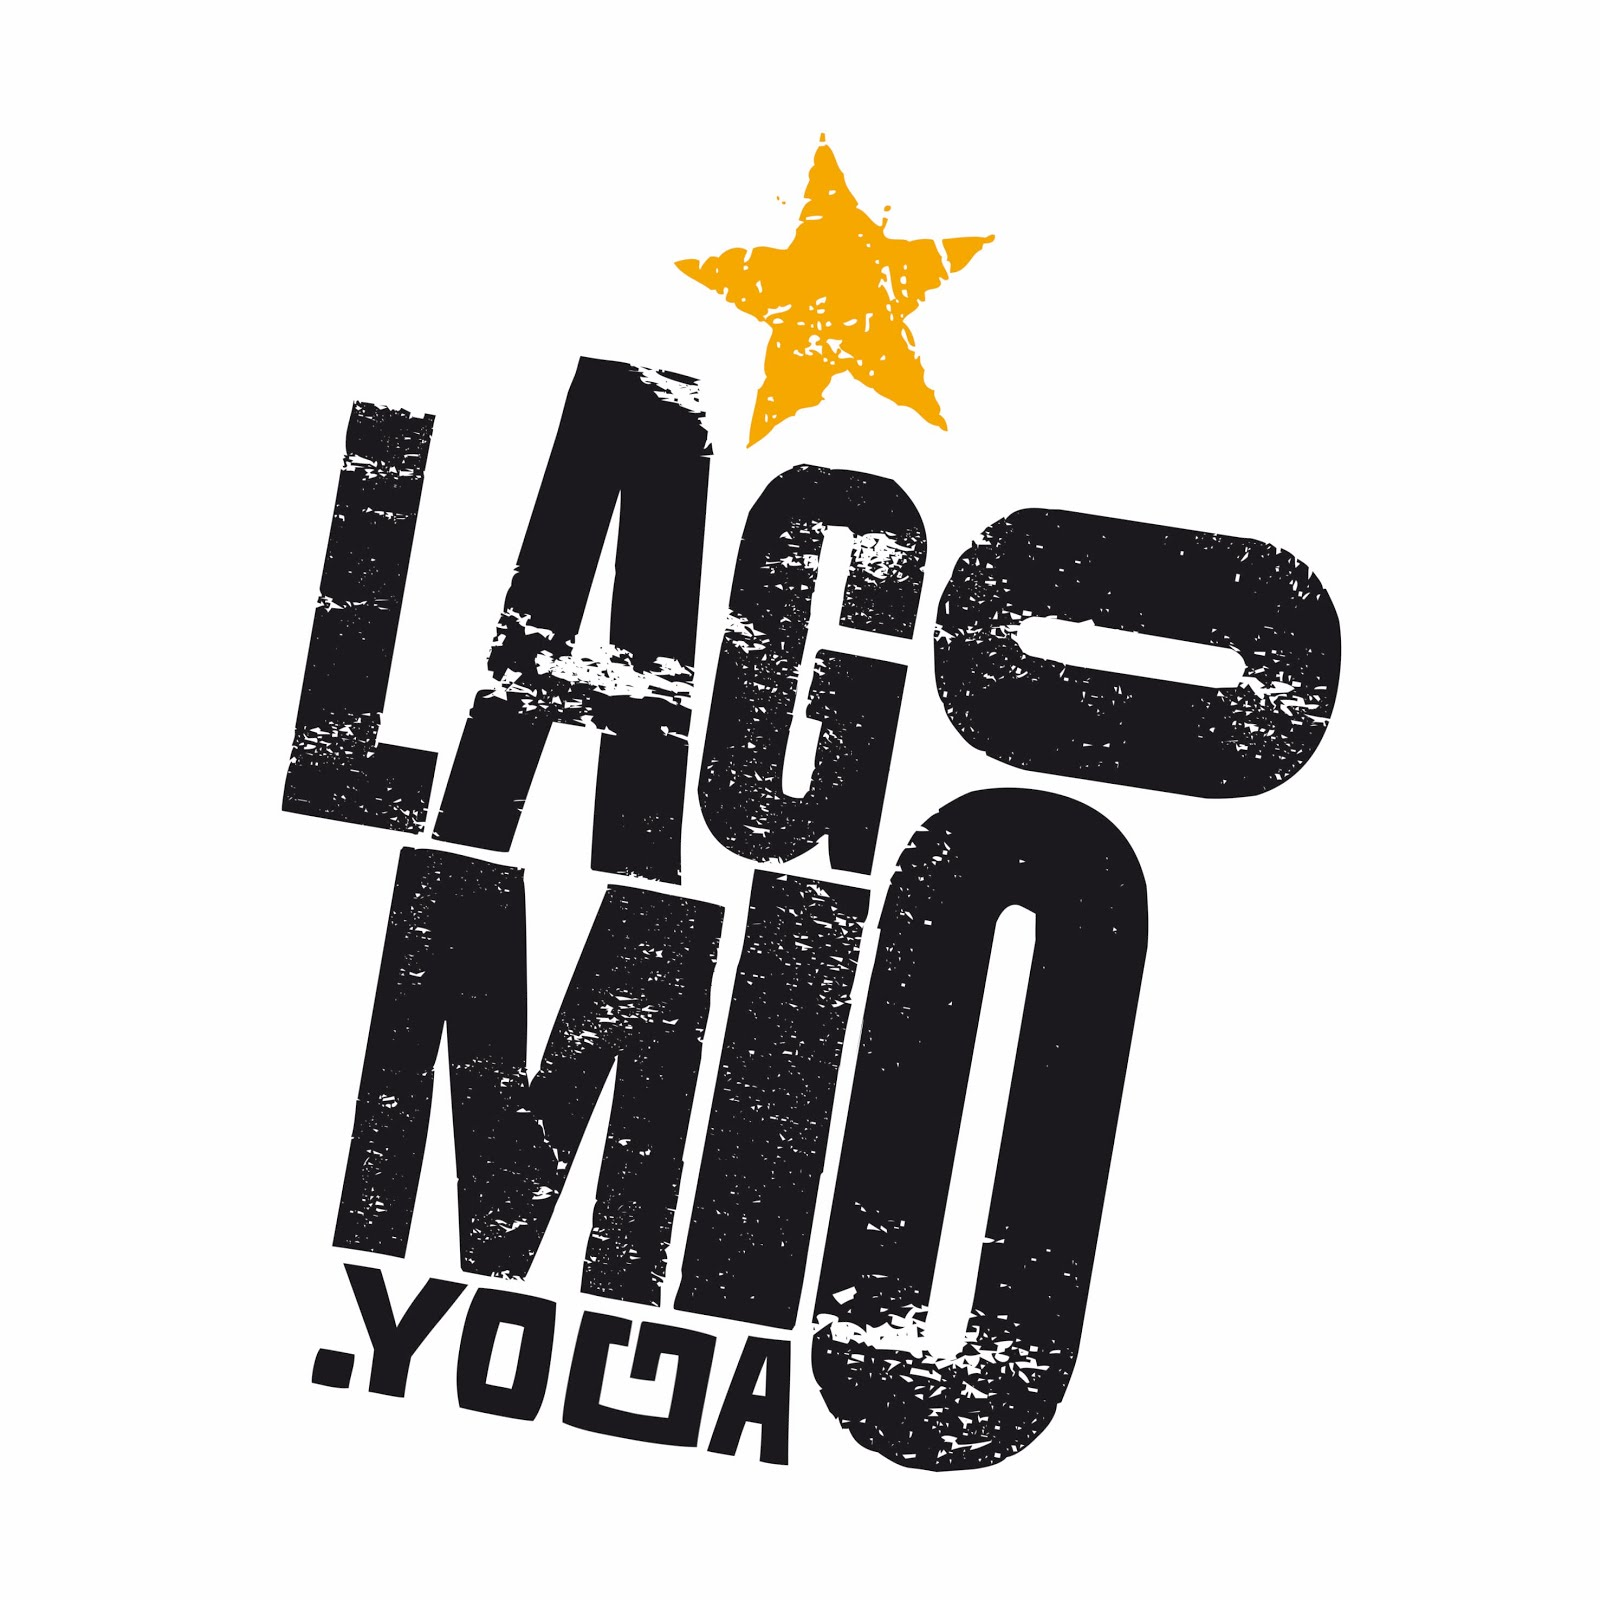 LAGO MIO BOARDS